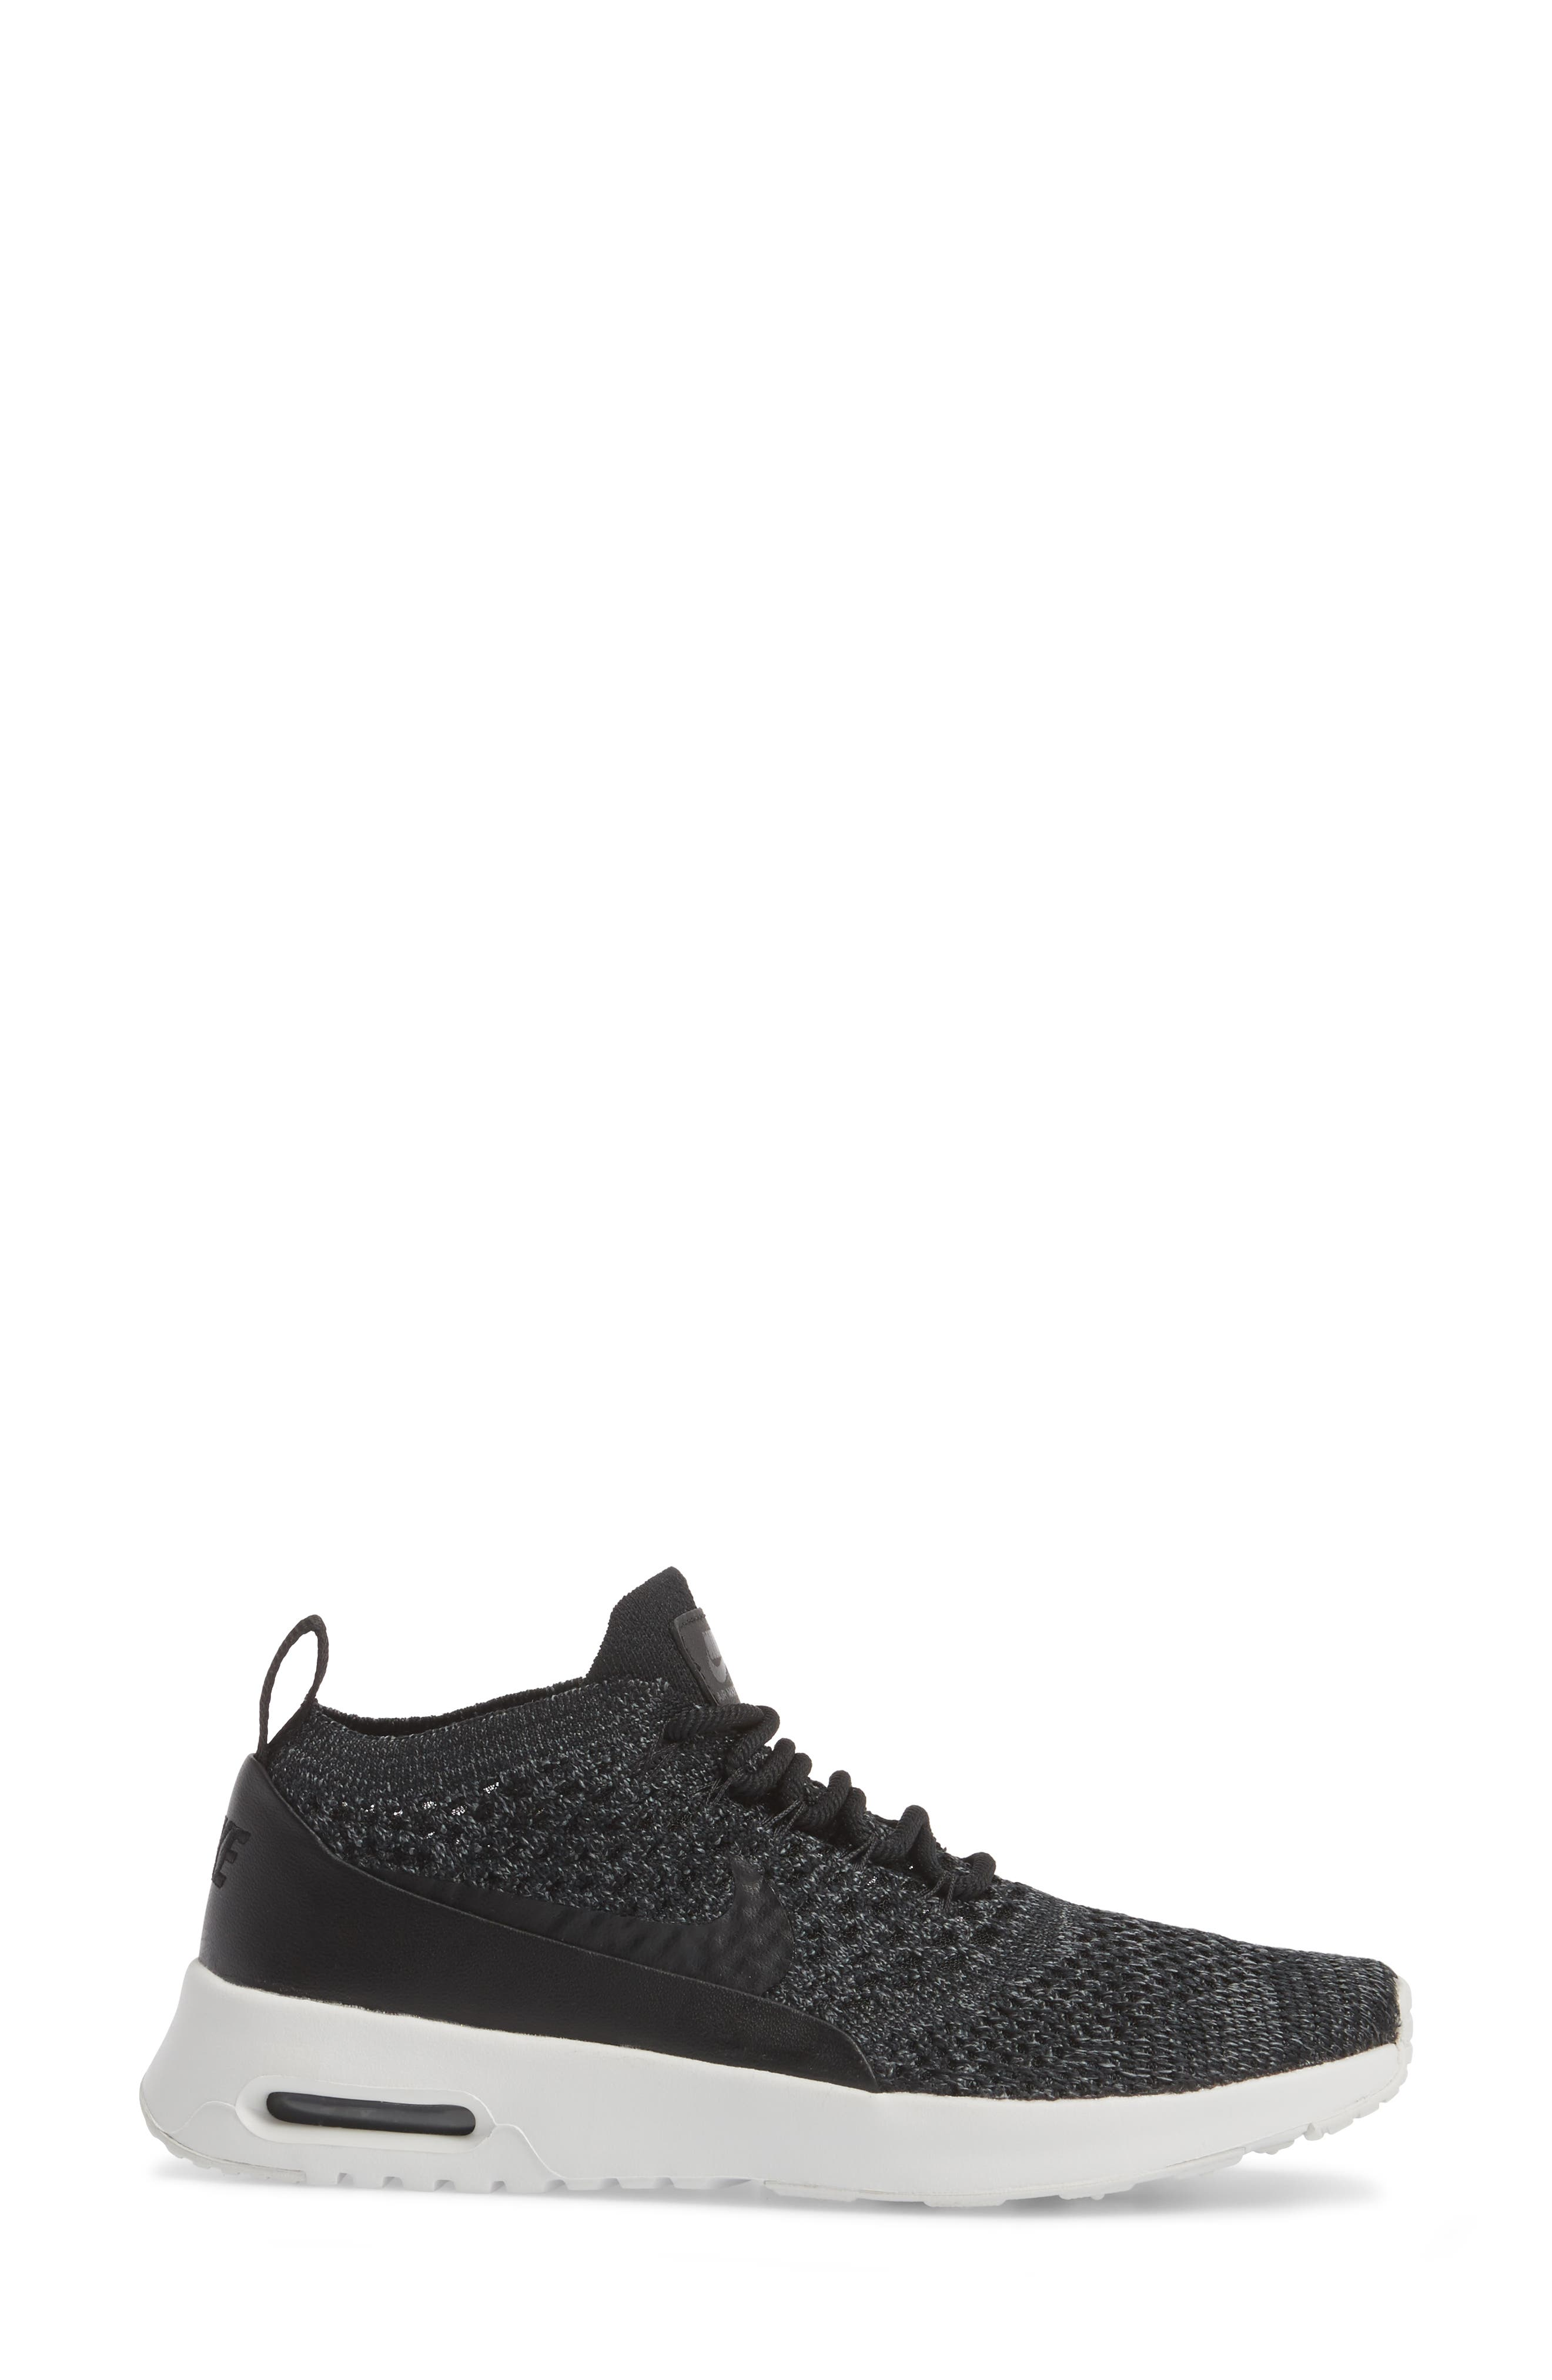 Air Max Thea Ultra Flyknit Sneaker,                             Alternate thumbnail 25, color,